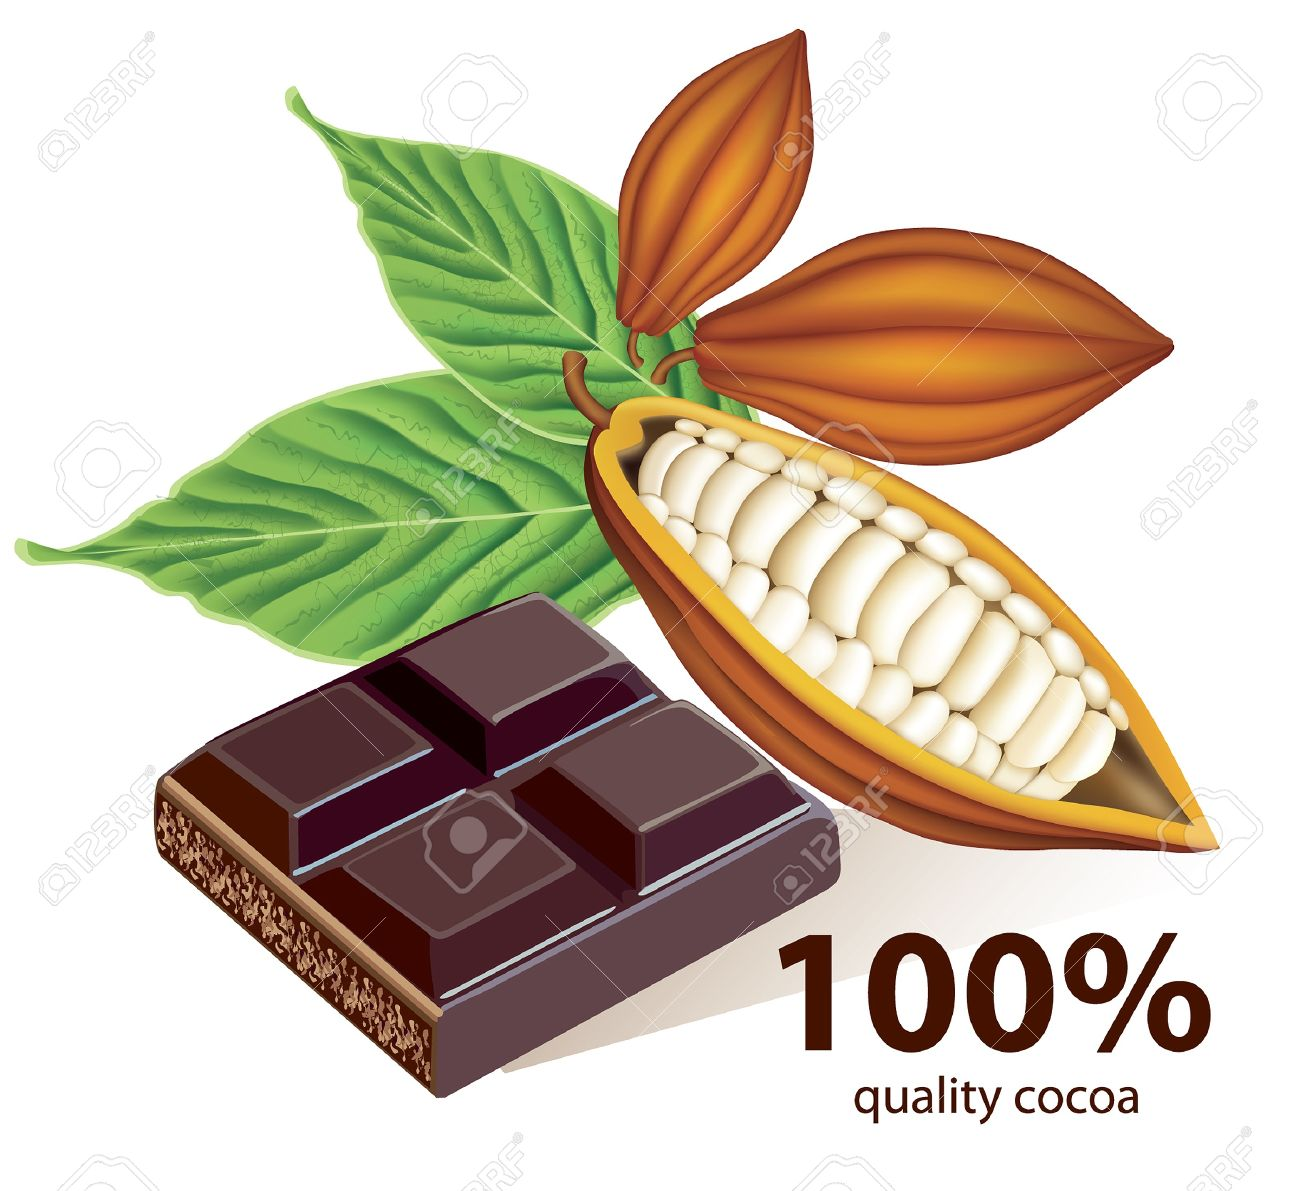 Vector cocoa beans with chocolate bar - 10502085